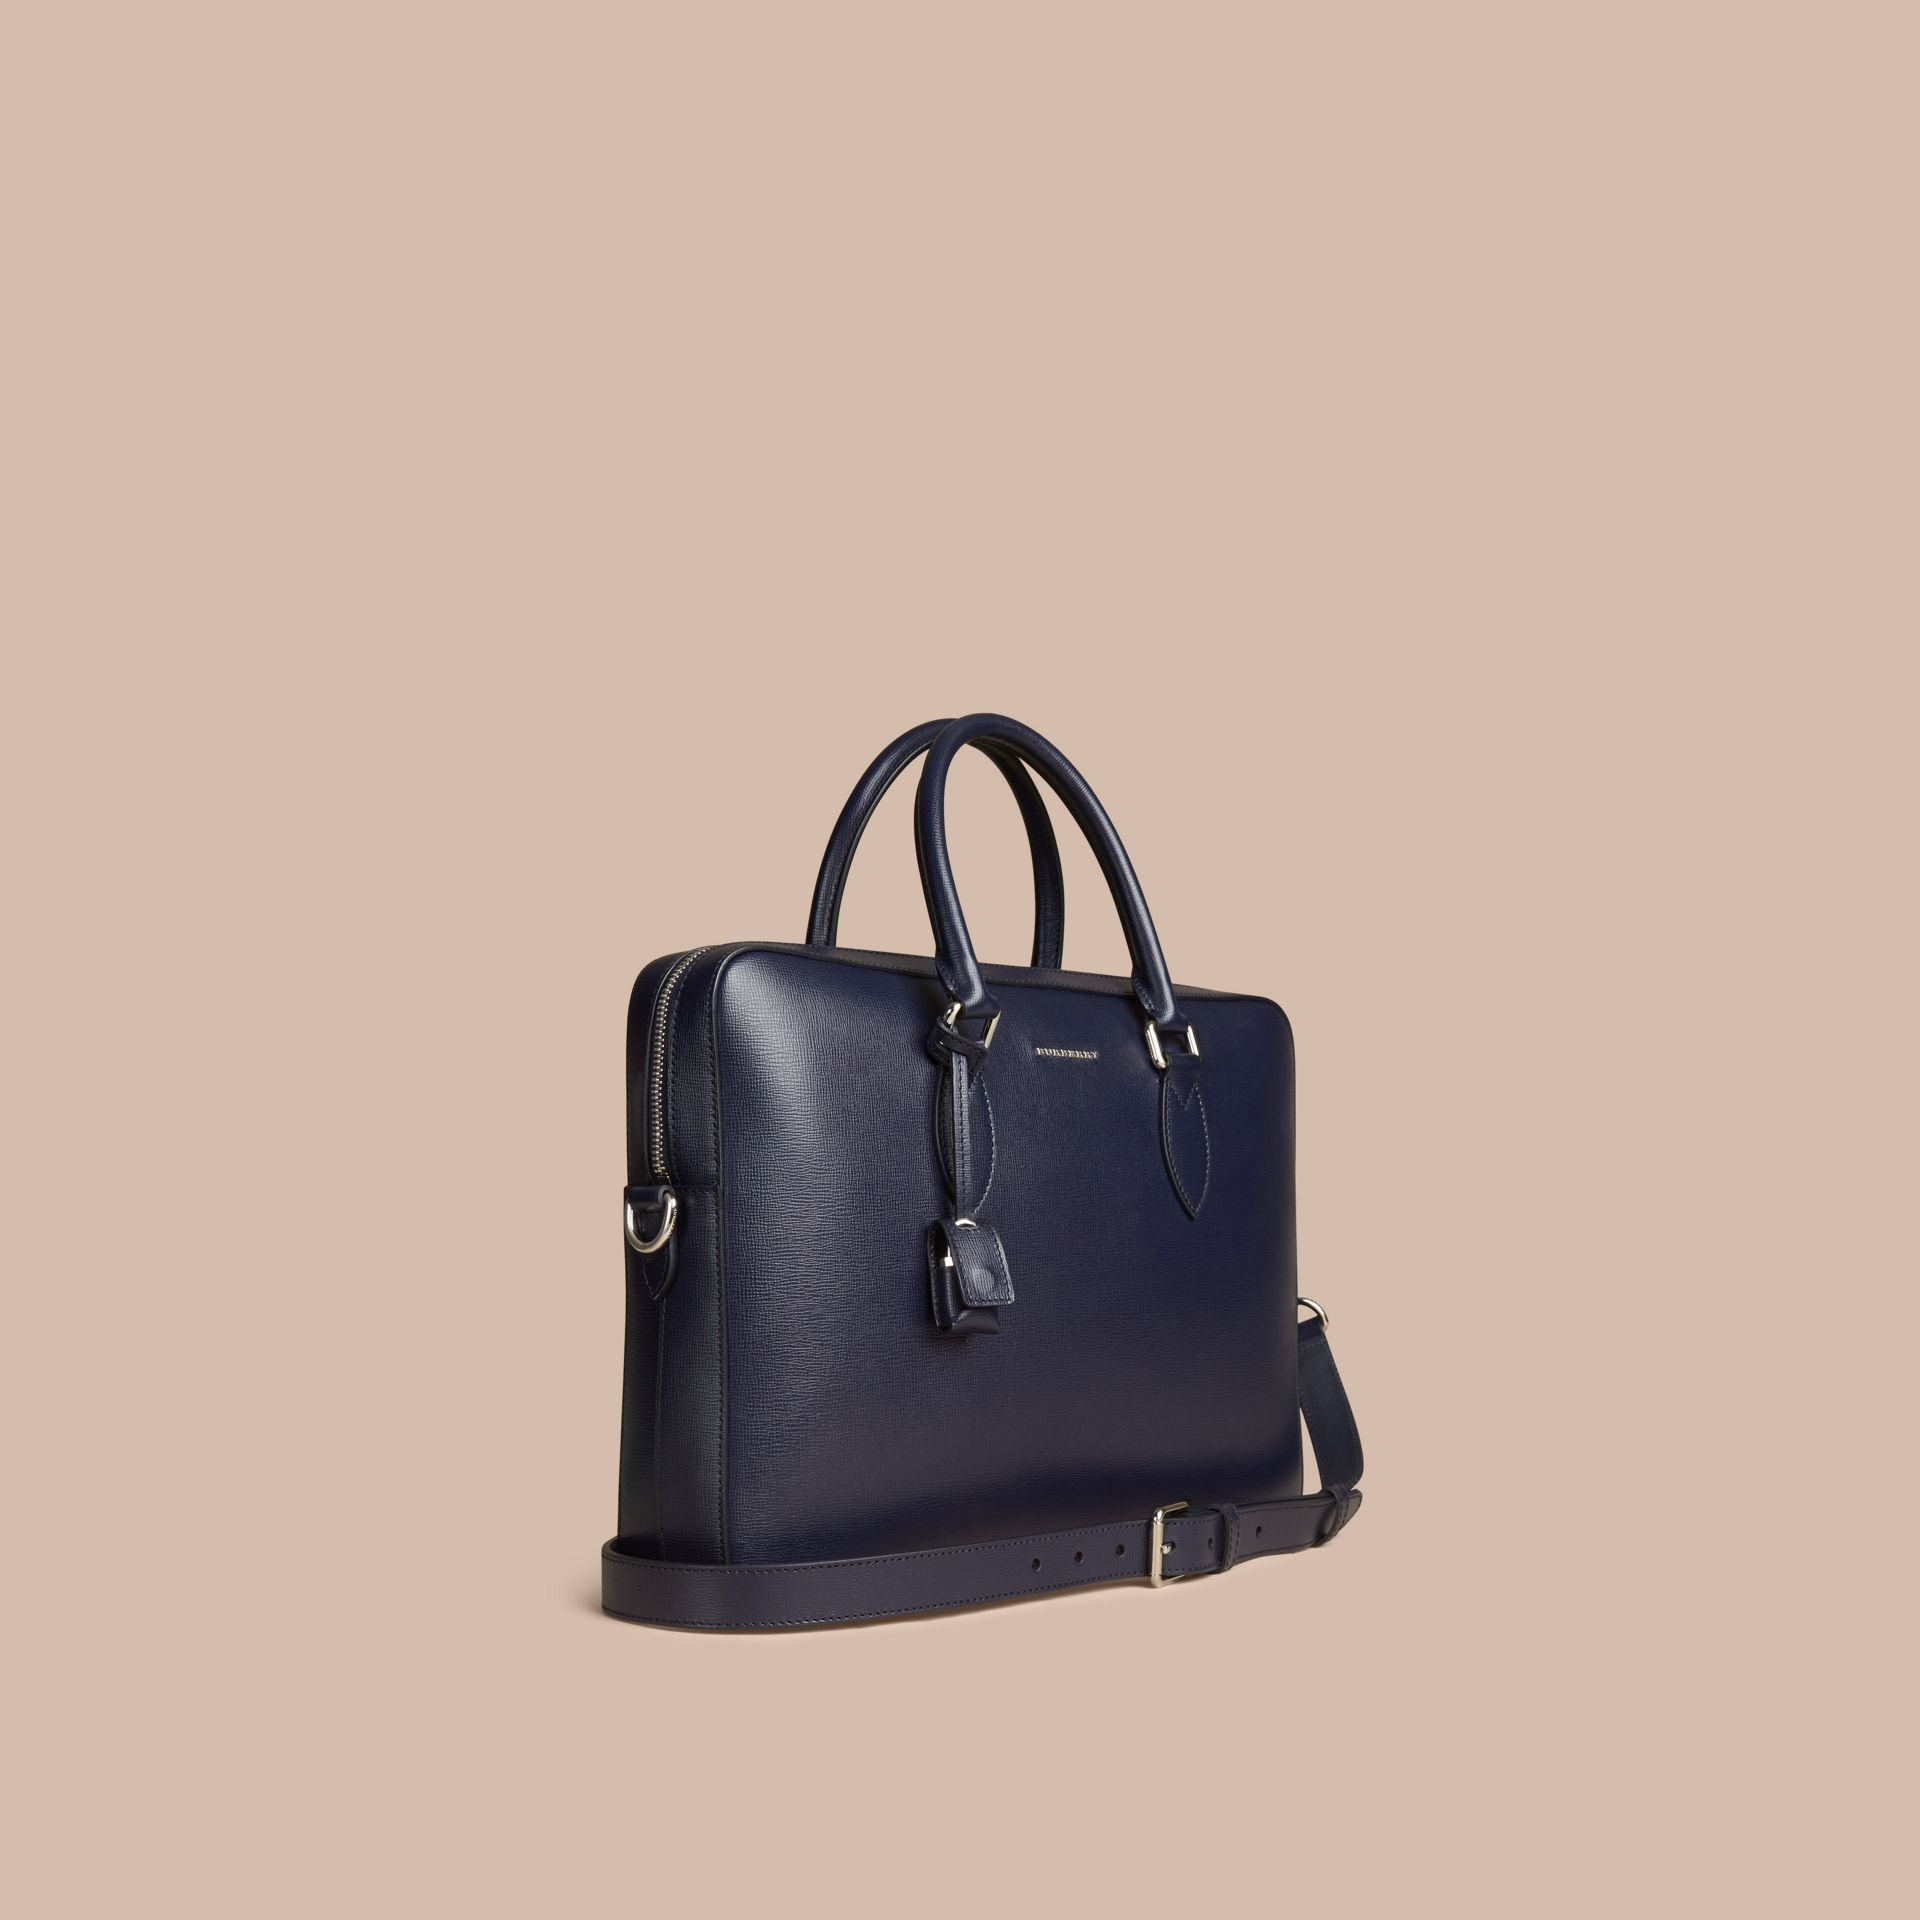 Borsa portadocumenti media in pelle London Navy Scuro - immagine della galleria 1